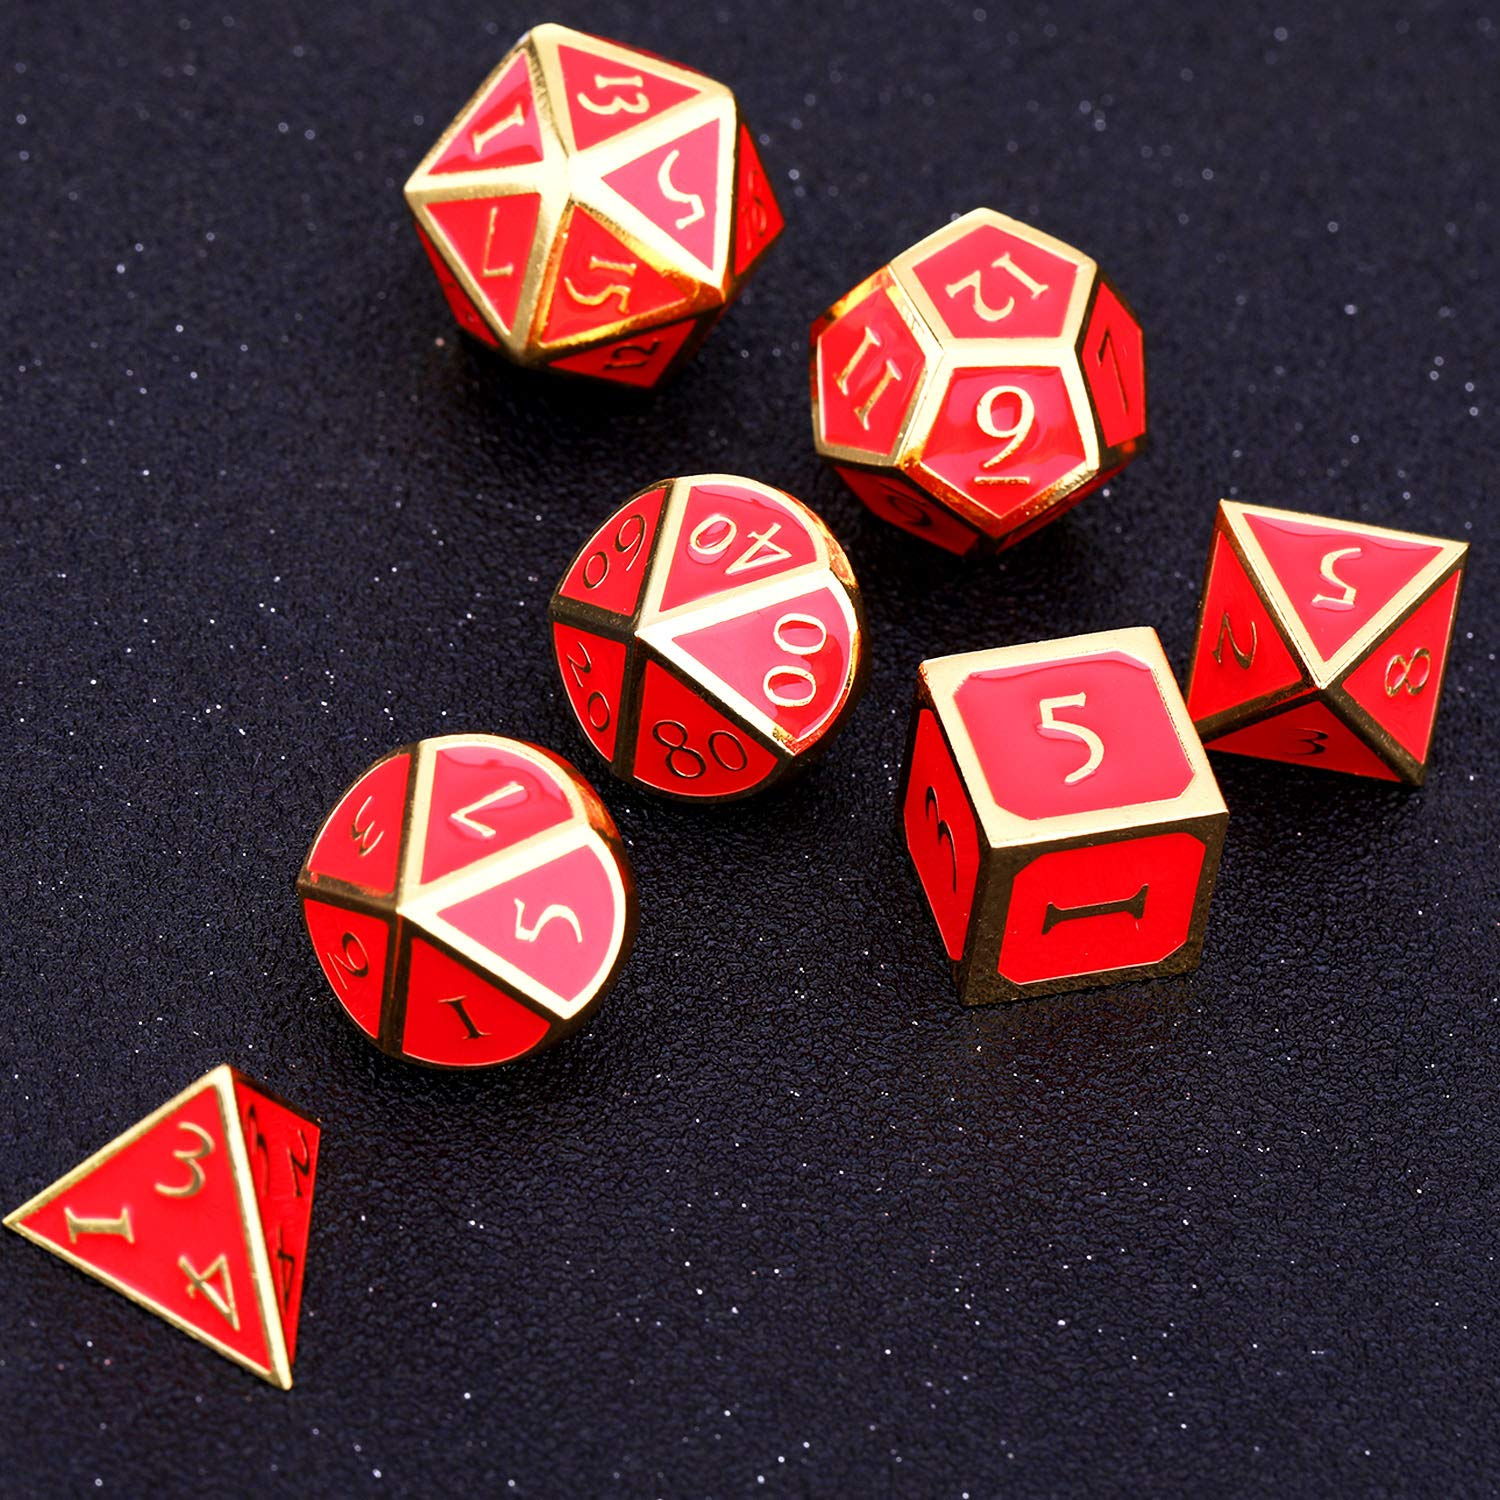 7 Pieces Metal Dices Set DND Game Polyhedral Solid Metal D/&D Dice Set with Storage Bag and Zinc Alloy with Enamel for Role Playing Game Dungeons and Dragons Black Edge Atrovirens Math Teaching